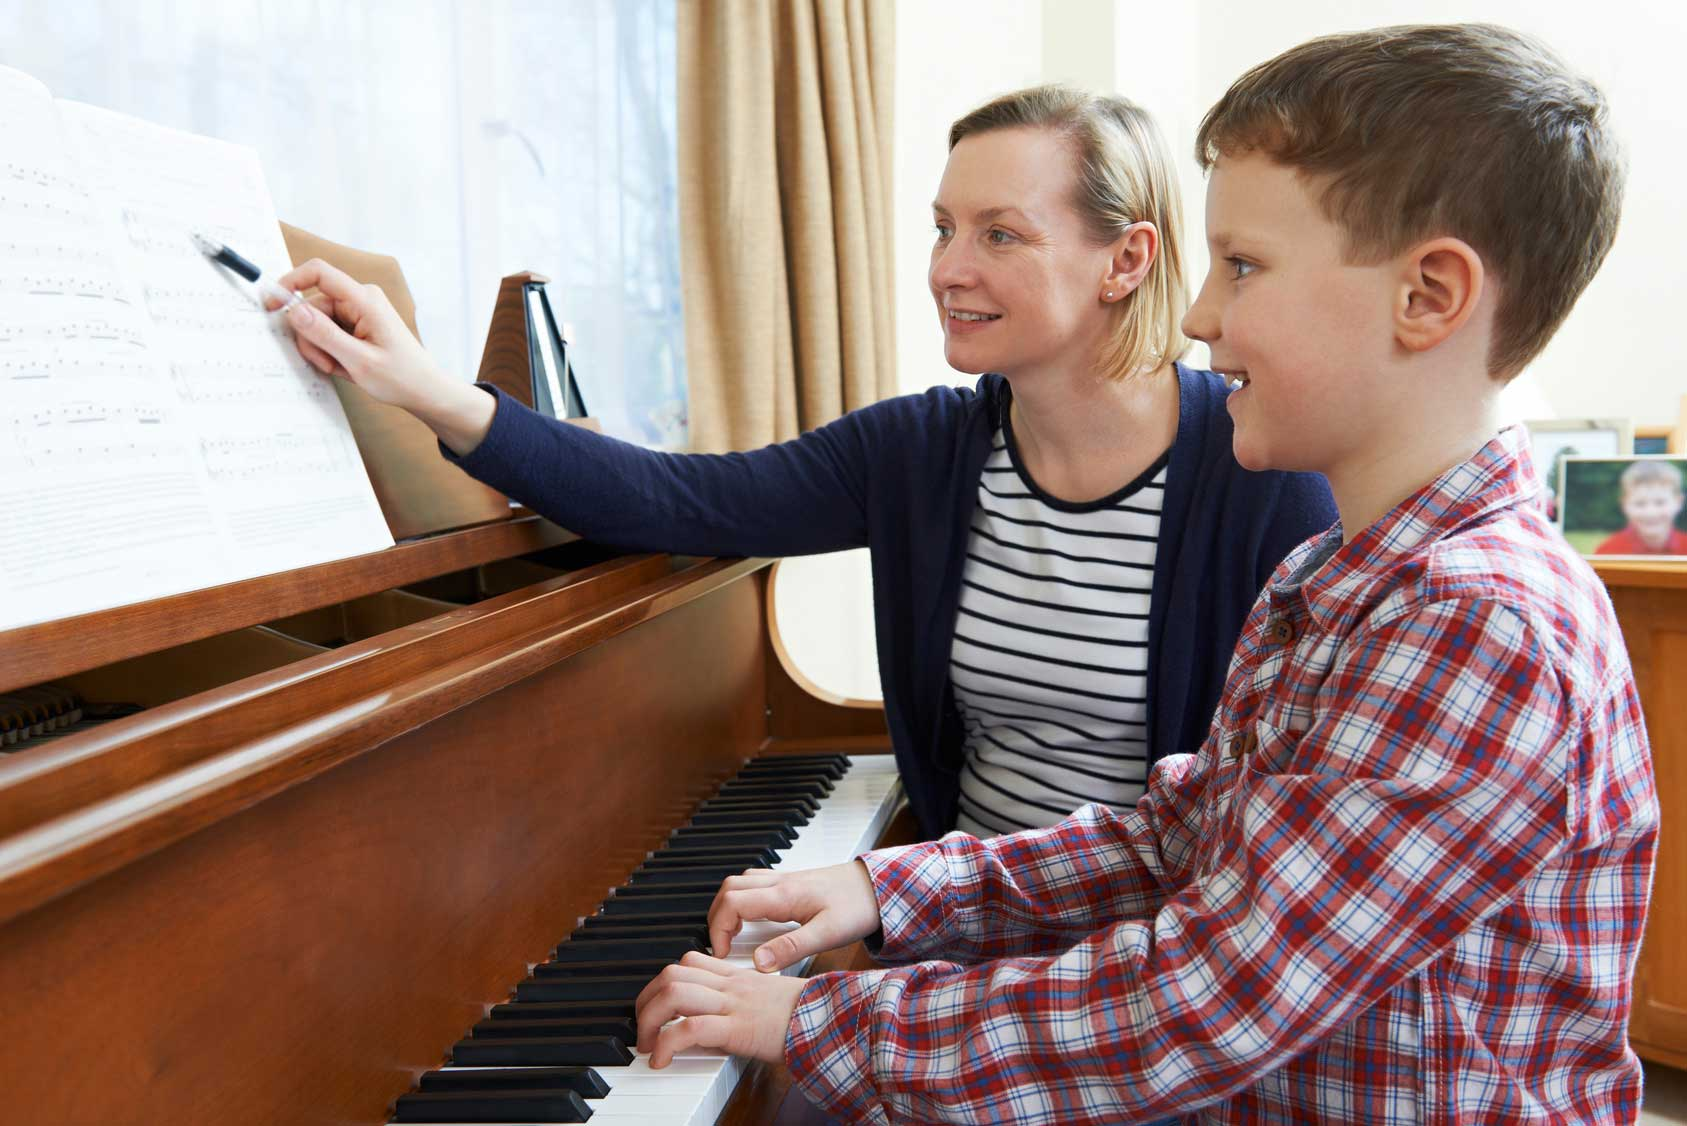 How Long Does It Take To Learn to Play Piano? - THE ONE ...